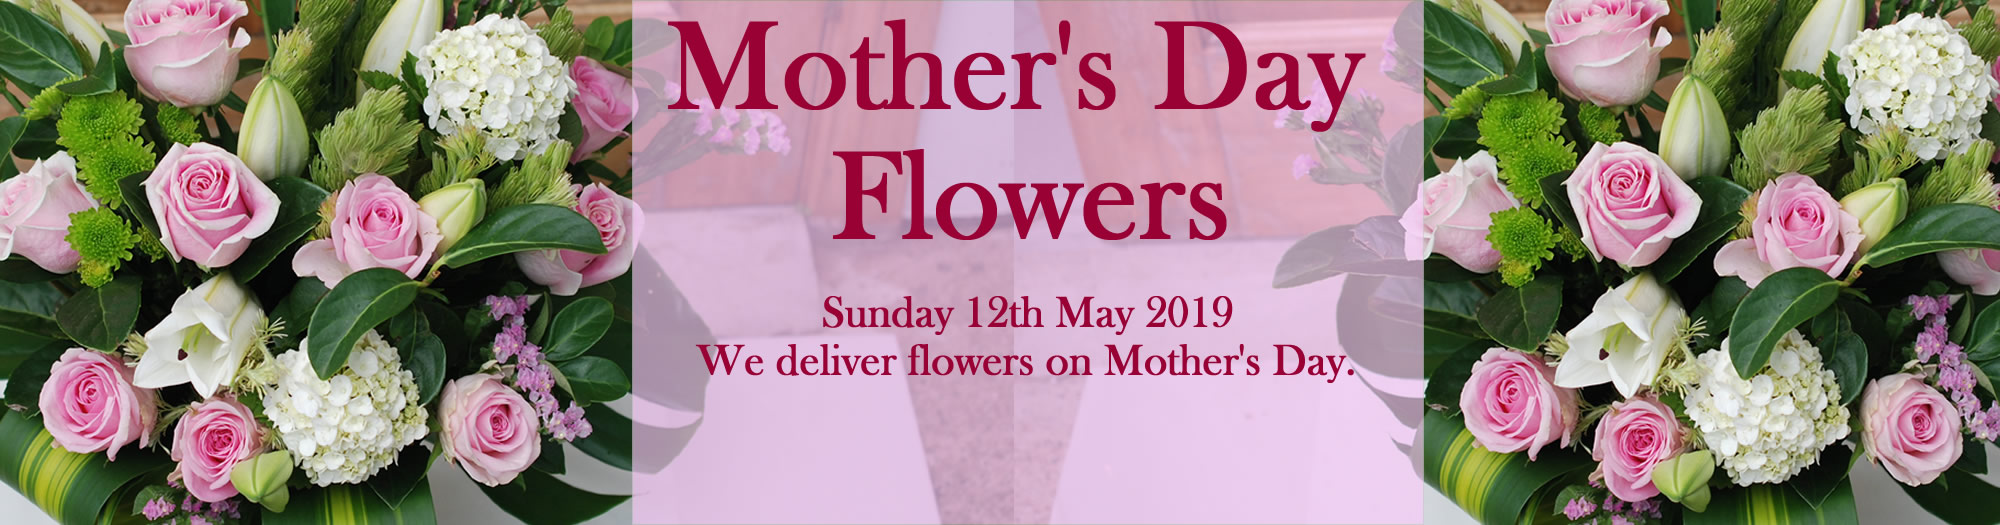 Angkor flowers - Mothers day 2019